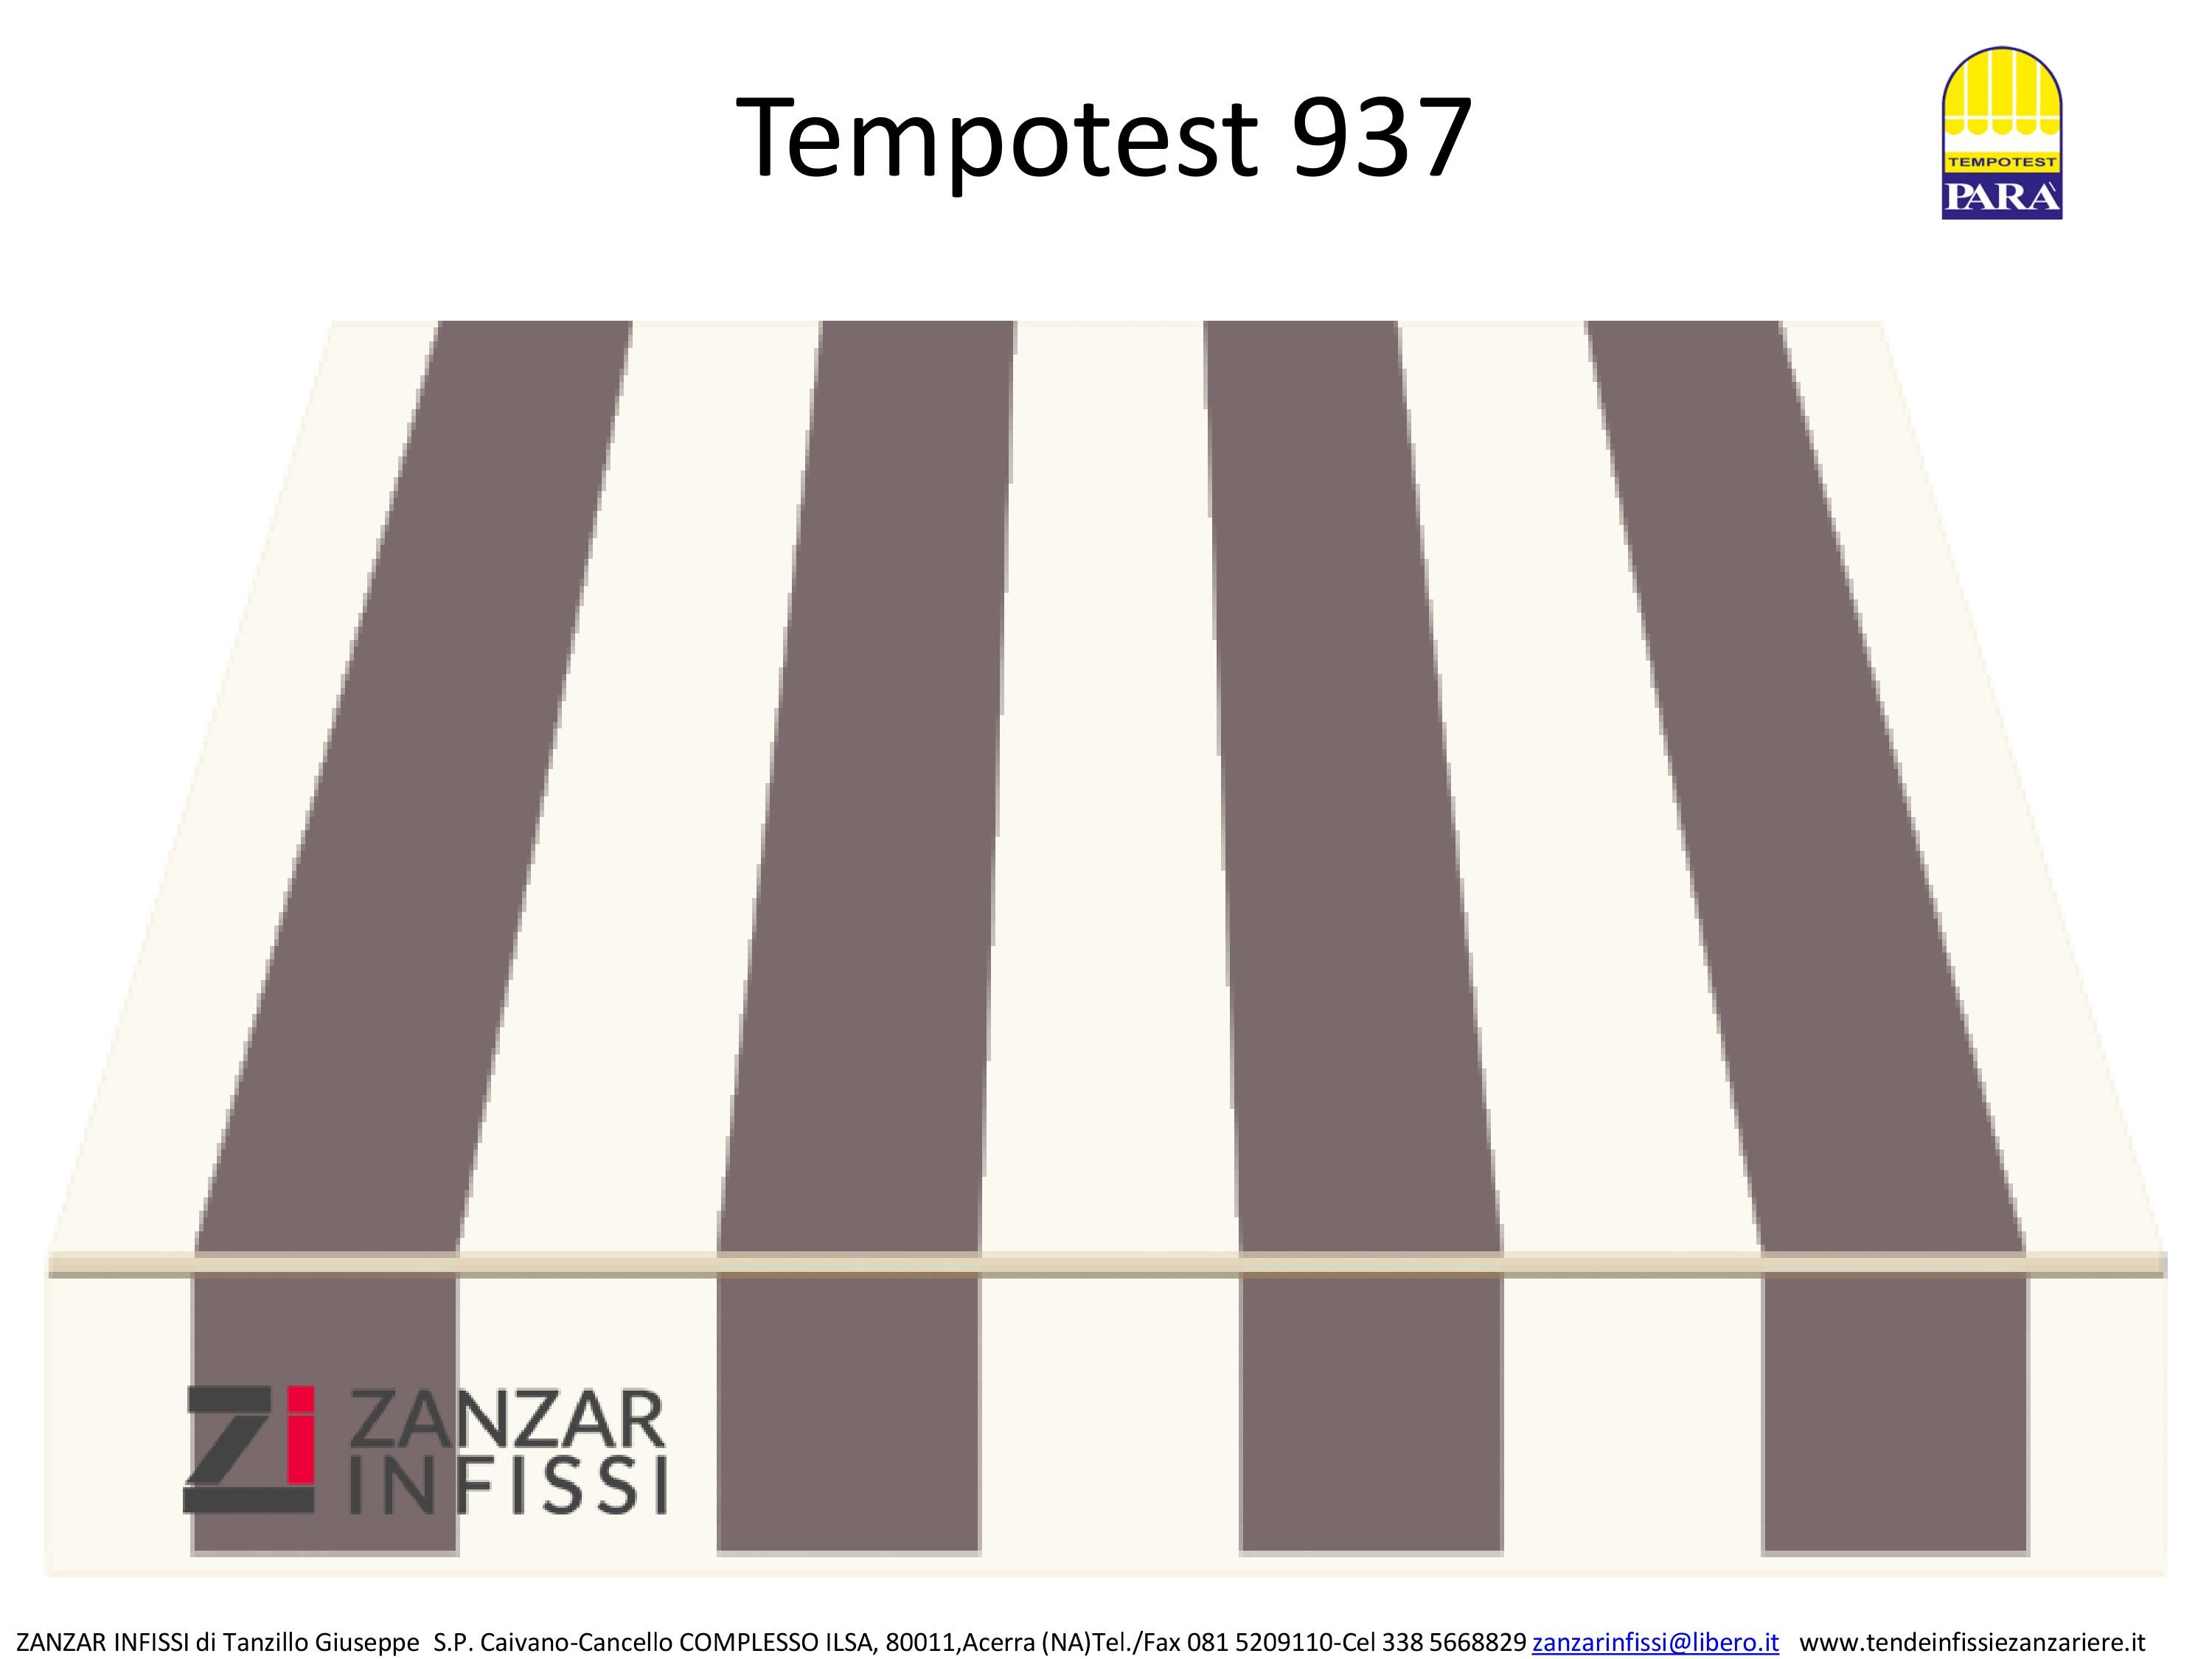 Tempotest 937